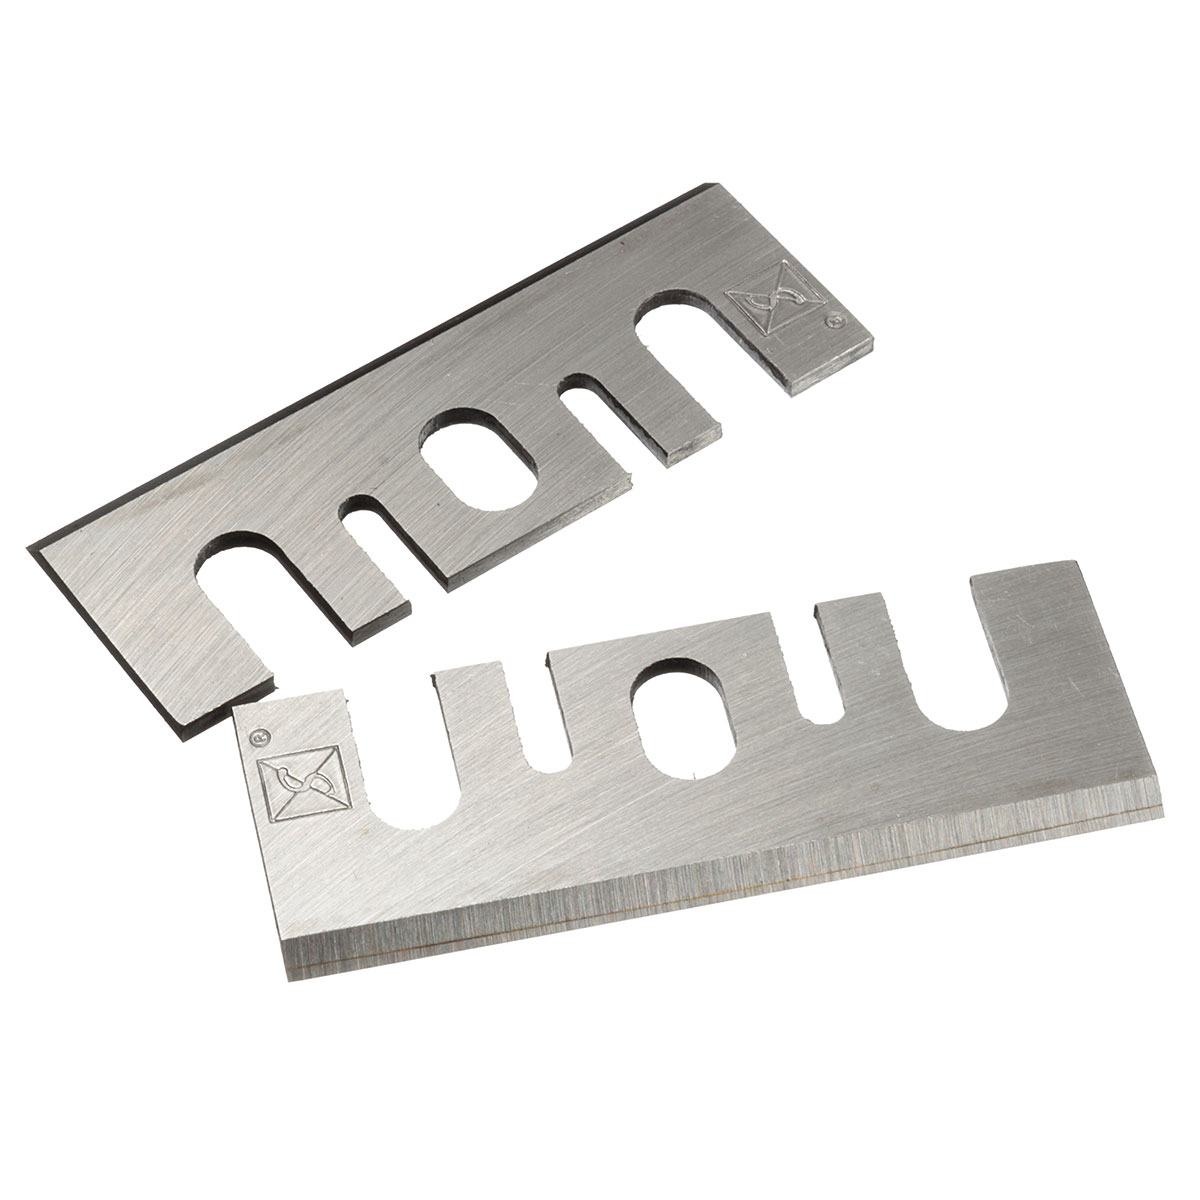 82mm hss planing planer blades replacement for makita hitachi ryobi 4a614e64 6577 6a74 9a61 bab92cb0f605g fandeluxe Gallery